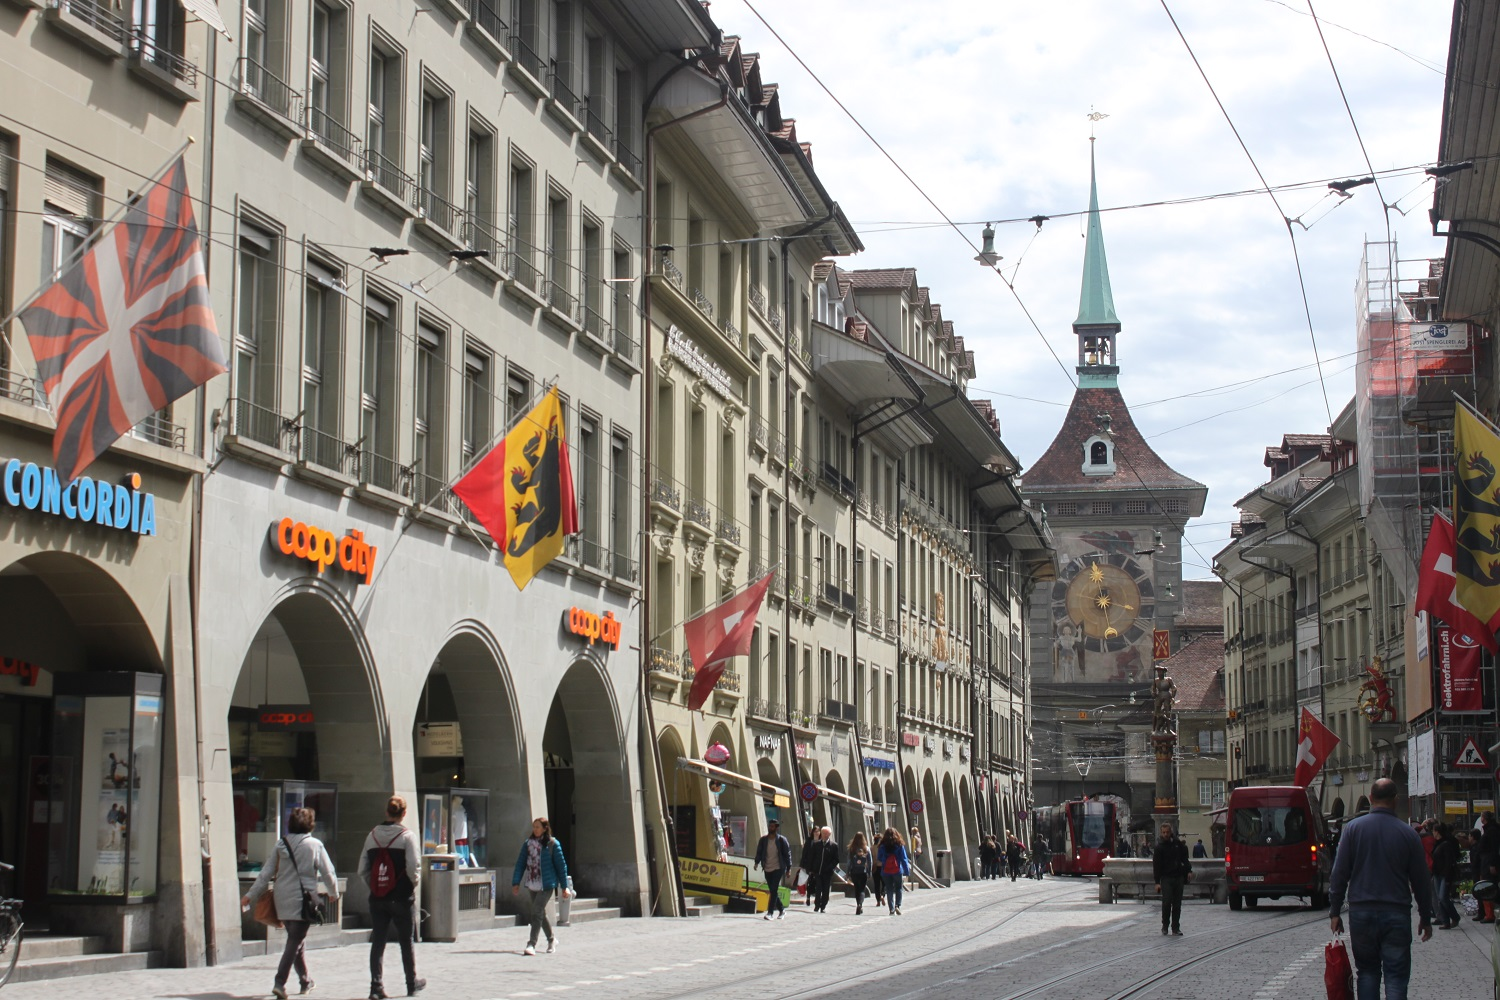 The streets of Bern